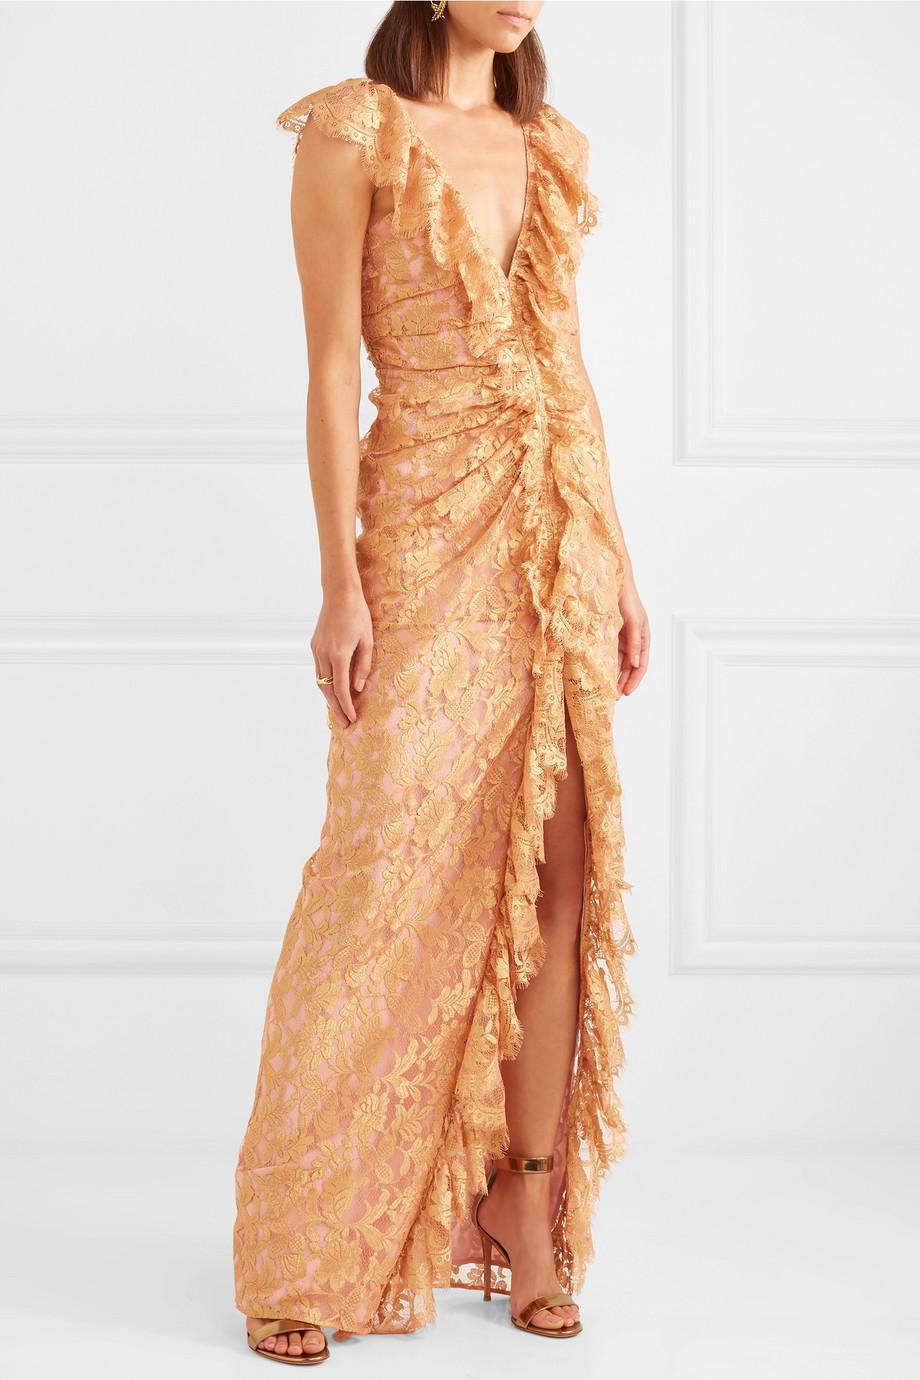 Notion Ruffled Metallic Chantilly Lace Gown - Pink Alice McCall Cheap Sale With Credit Card Clearance Pay With Visa DAgOT